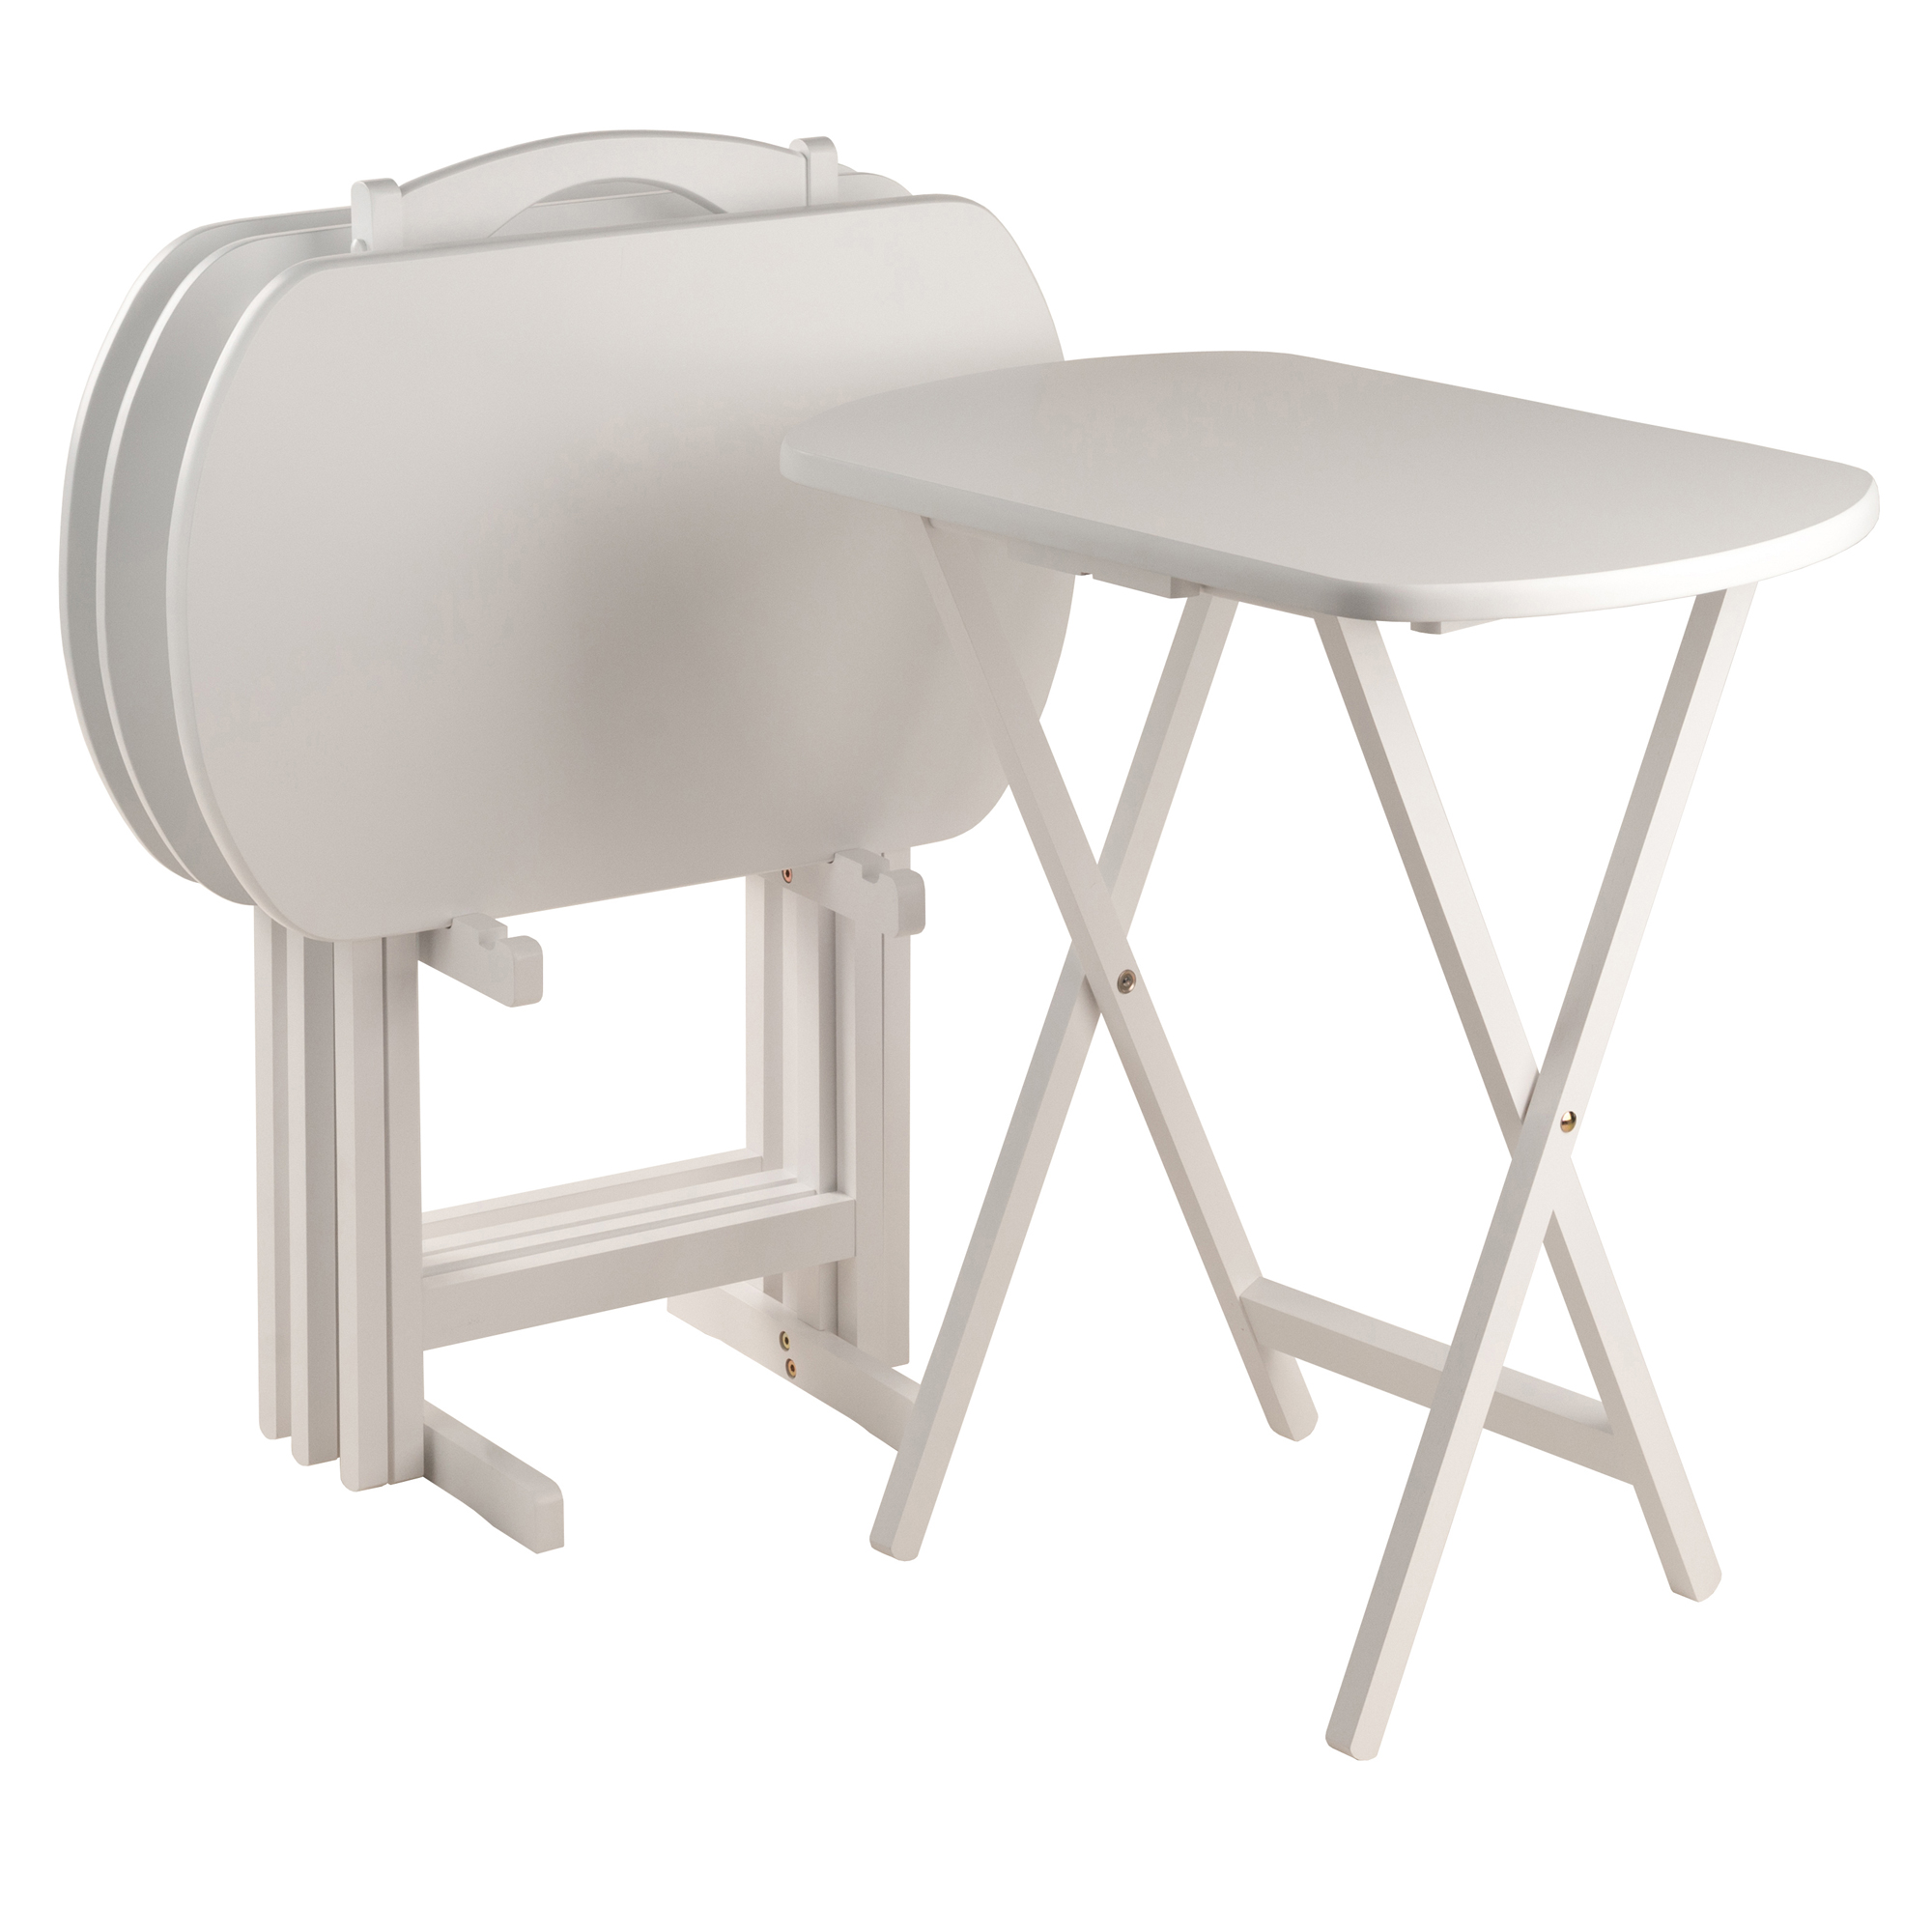 Winsome Corbette Wood 5 Piece Over Sized Folding TV Tray Table Set, White